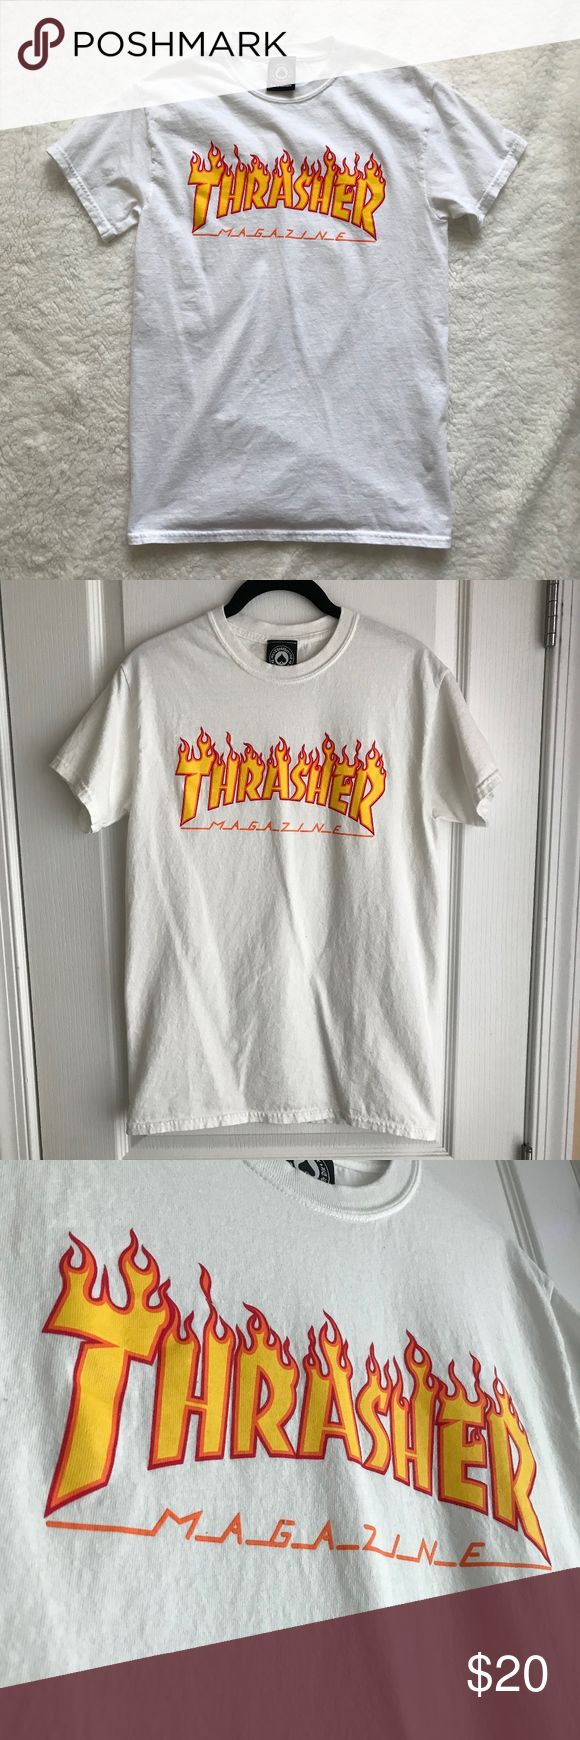 "Thrasher Graphic Tee Snag this super popular graphic tee to add a touch of skater vibes to any look!  Looks great with camo joggers or blue skinnies and a black bomber jacket (also available on my shop, check it out!)  100% cotton a unisex SMALL worn once, washed twice (once when I brought it home from the store, and once after wearing it). Will be washed before shipping as well! neck: 14.25""-15"" chest: 36""-38"" Zumiez Tops Tees - Short Sleeve"